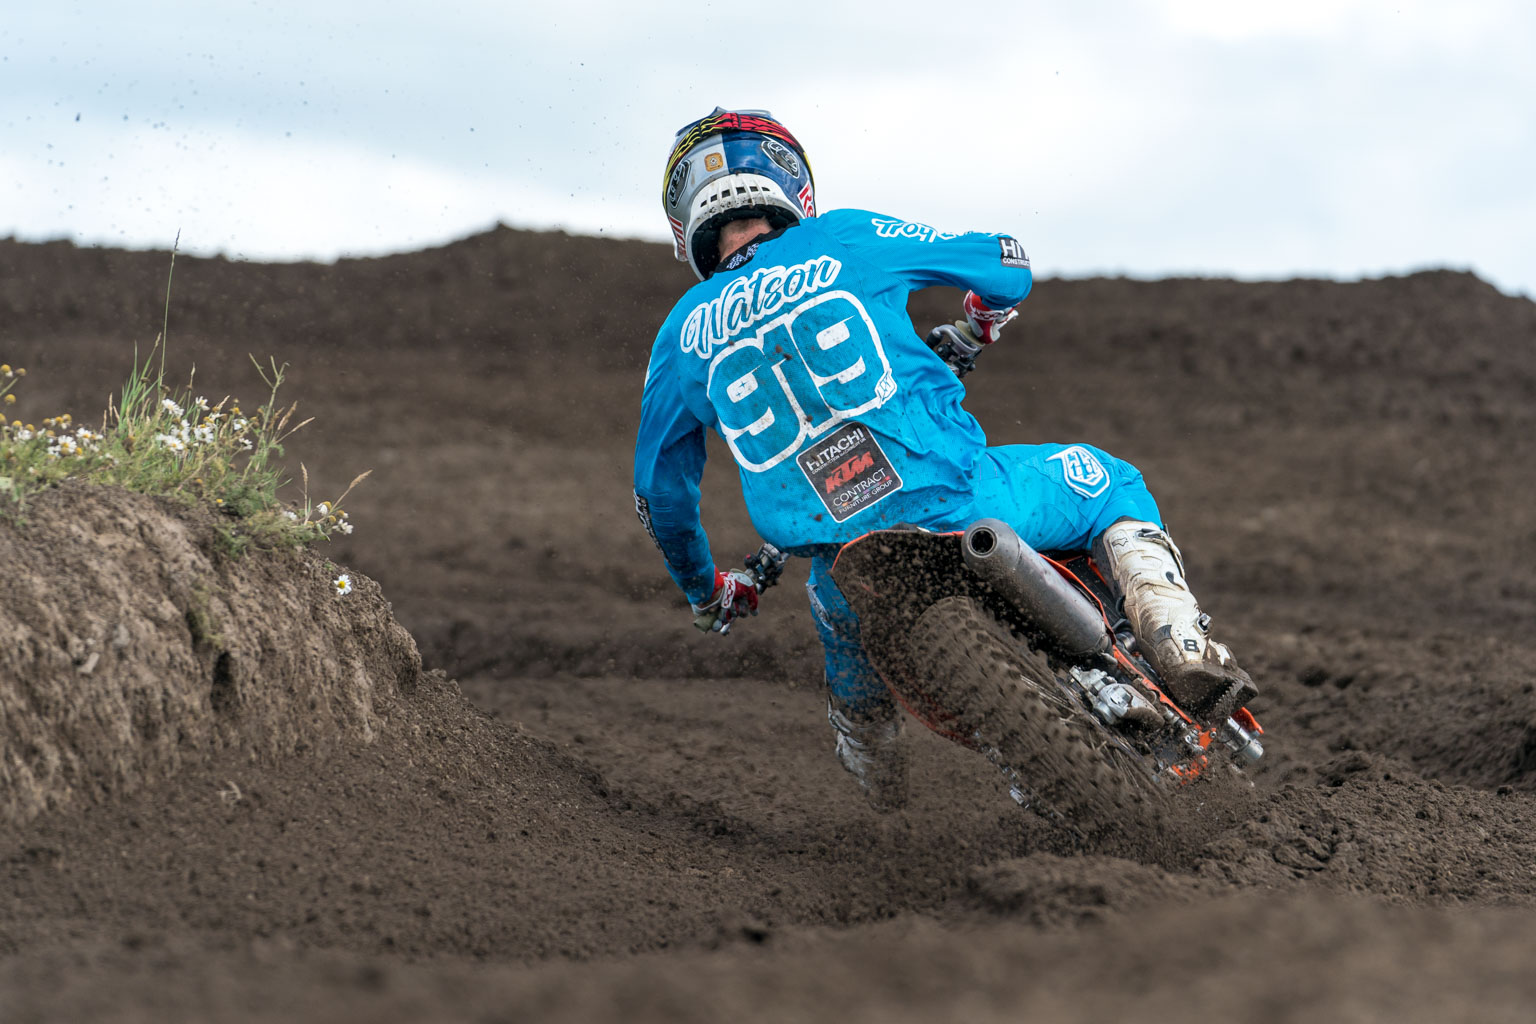 Watson rode well to take the MX2 title